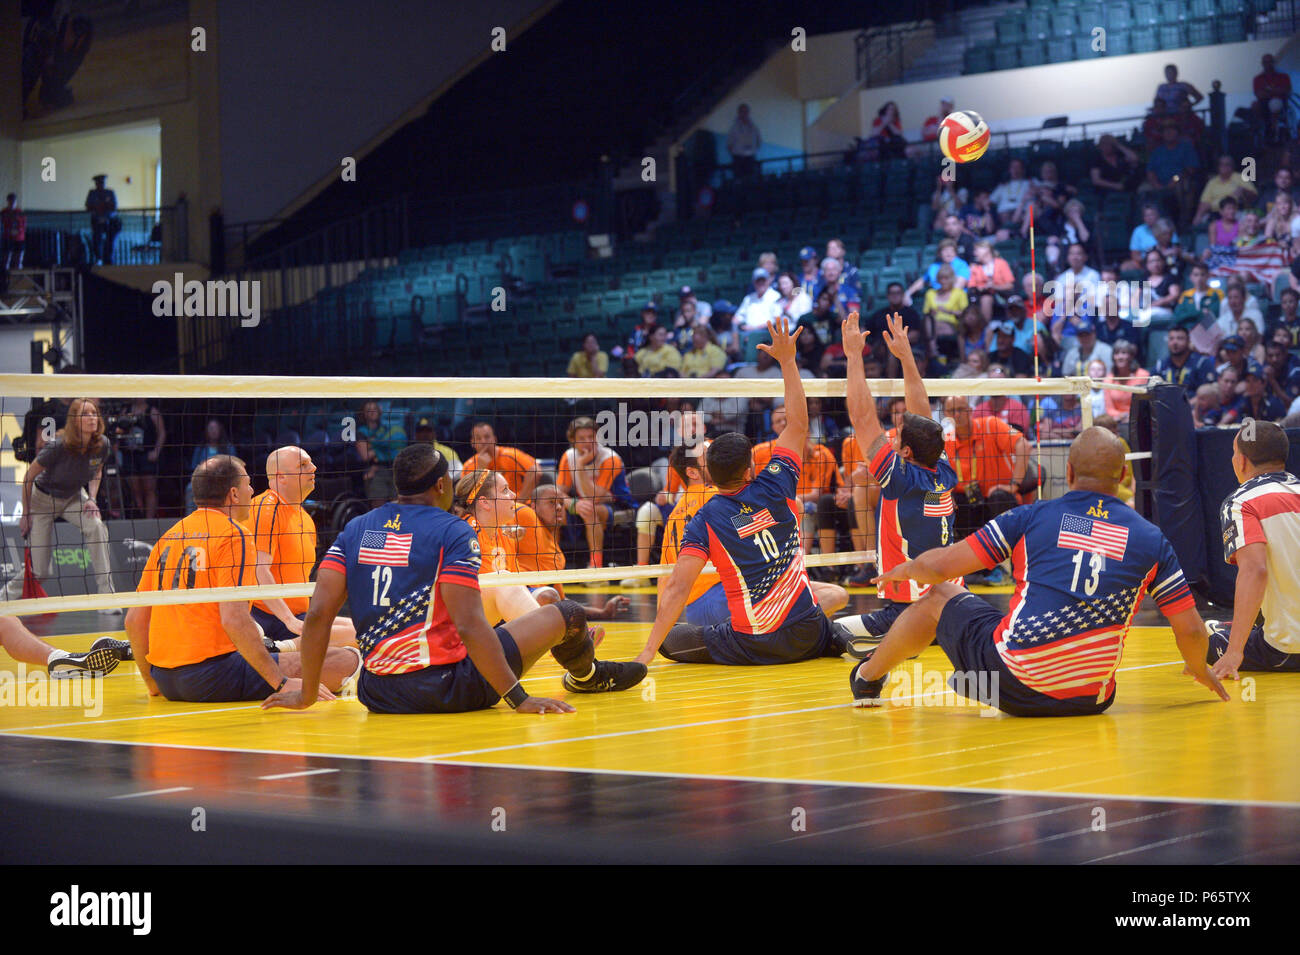 Athletes From Team Us And Netherlands Compete In The Sitting Volleyball Semi Finals During The 2016